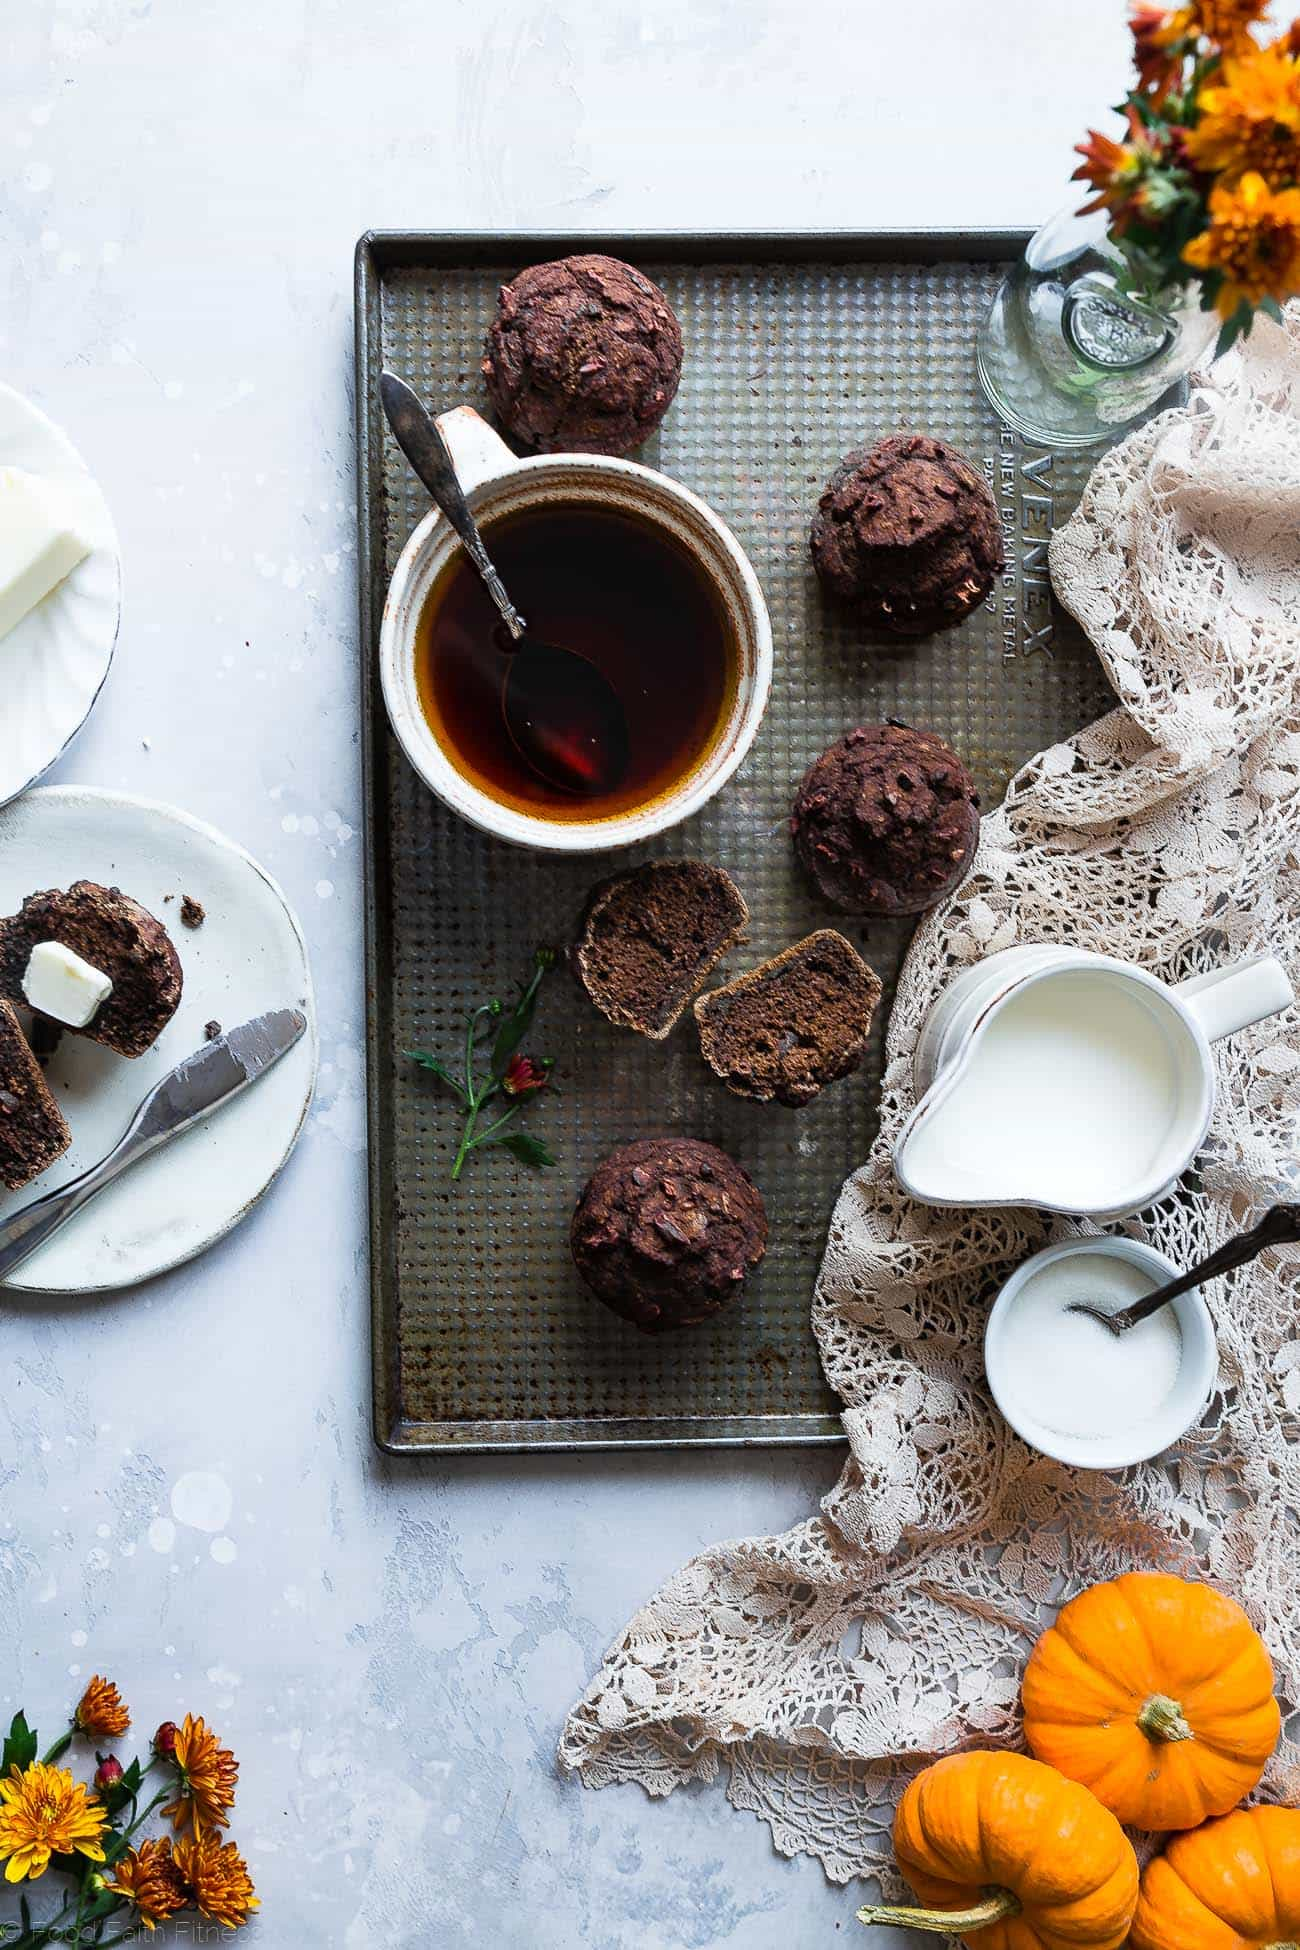 Healthy Gluten Free Chocolate Pumpkin Muffins - This Gluten free pumpkin muffin recipe is somoist and chewy! Made with whole grains, dairy free, low fat, only 140 calories! Perfect for breakfast or snack and kid friendly too! | Foodfaithfitness.com | @FoodFaitFit